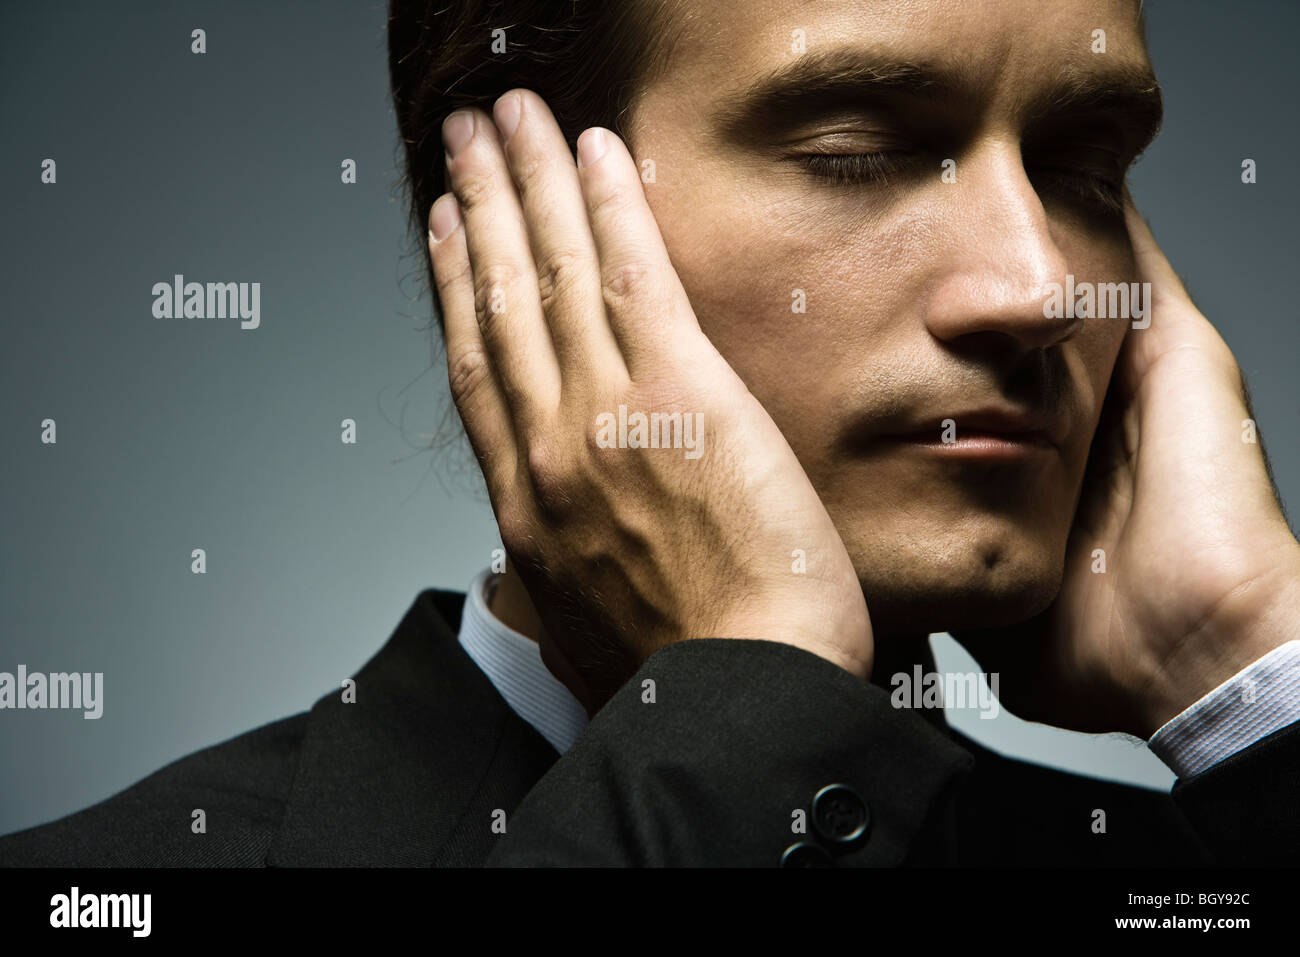 Man with hands held over ears and eyes closed Stock Photo